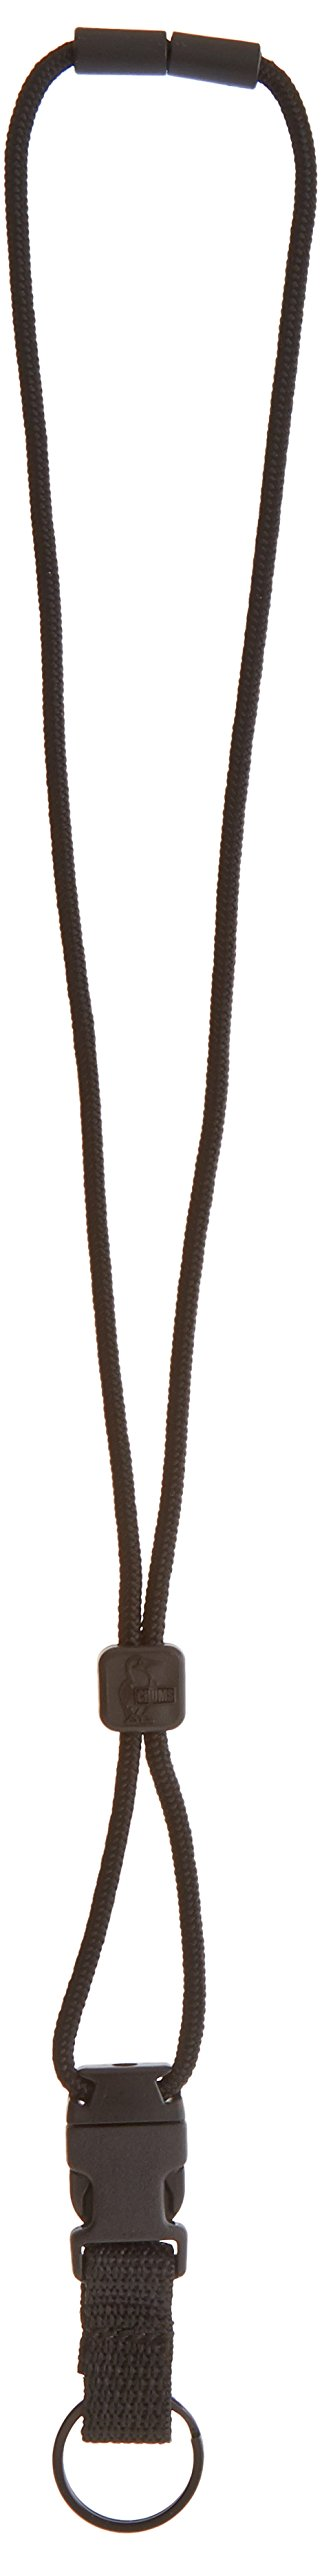 Chums Powercord QR Lanyard by Chums (Image #1)